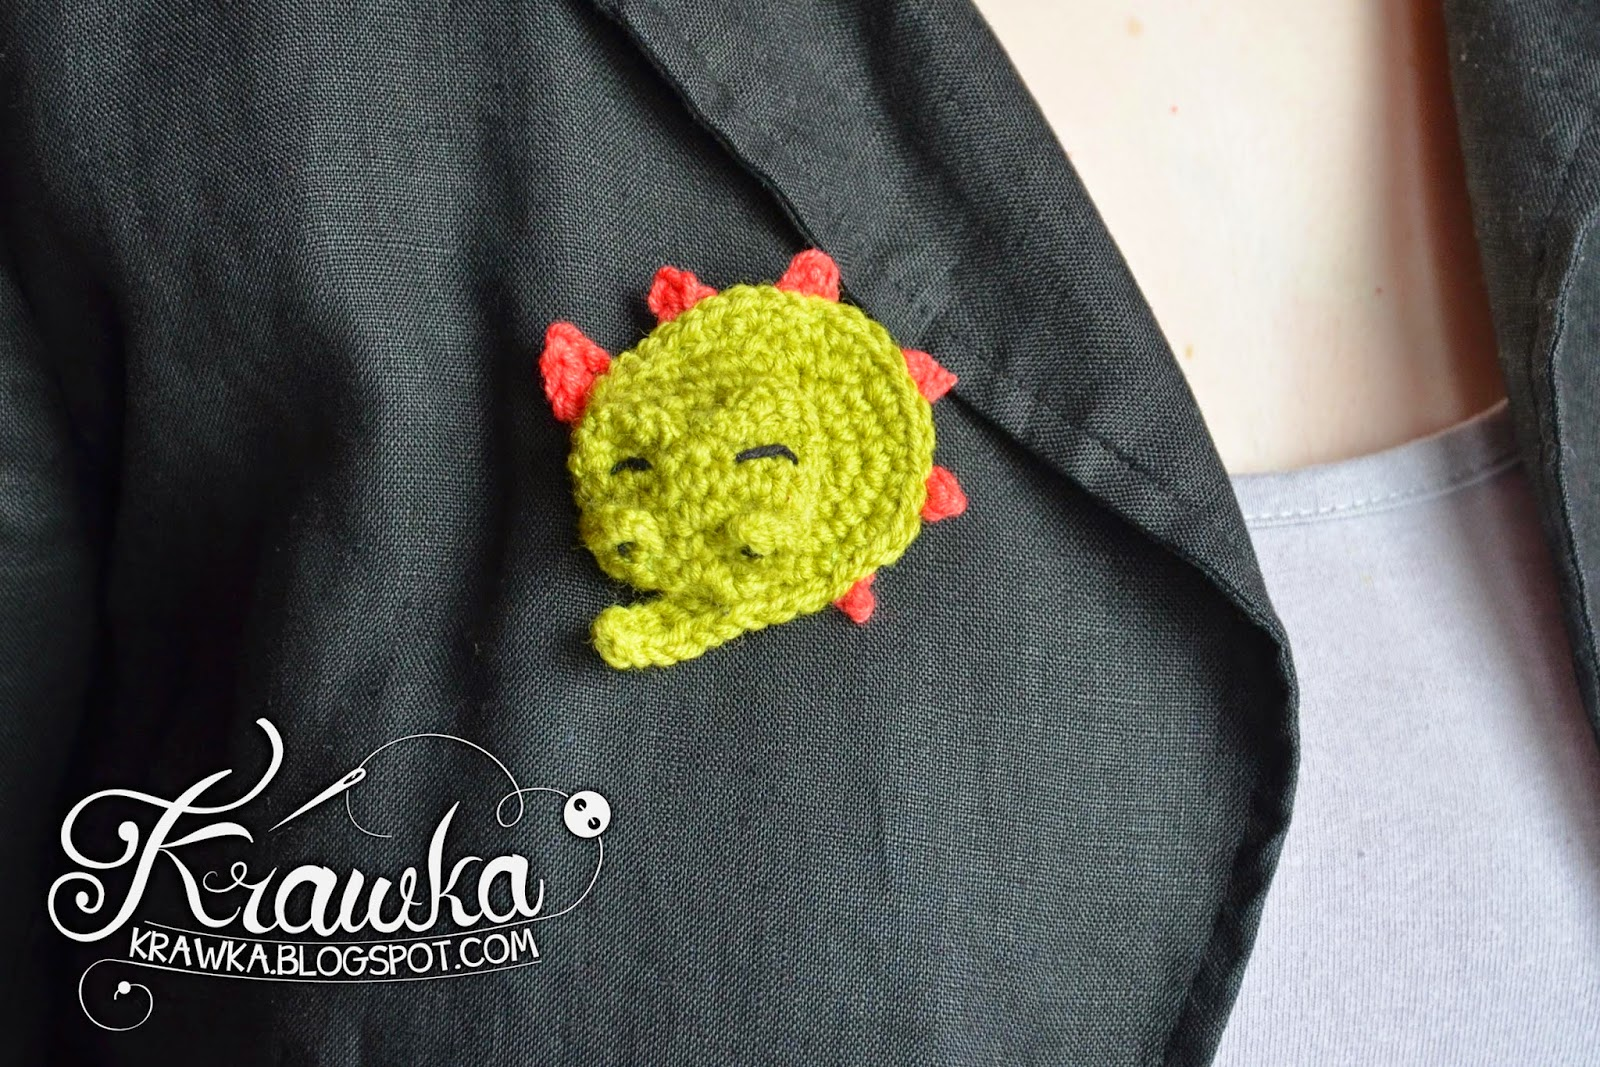 Krawka: Sleeping dragon brooch crochet with free pattern